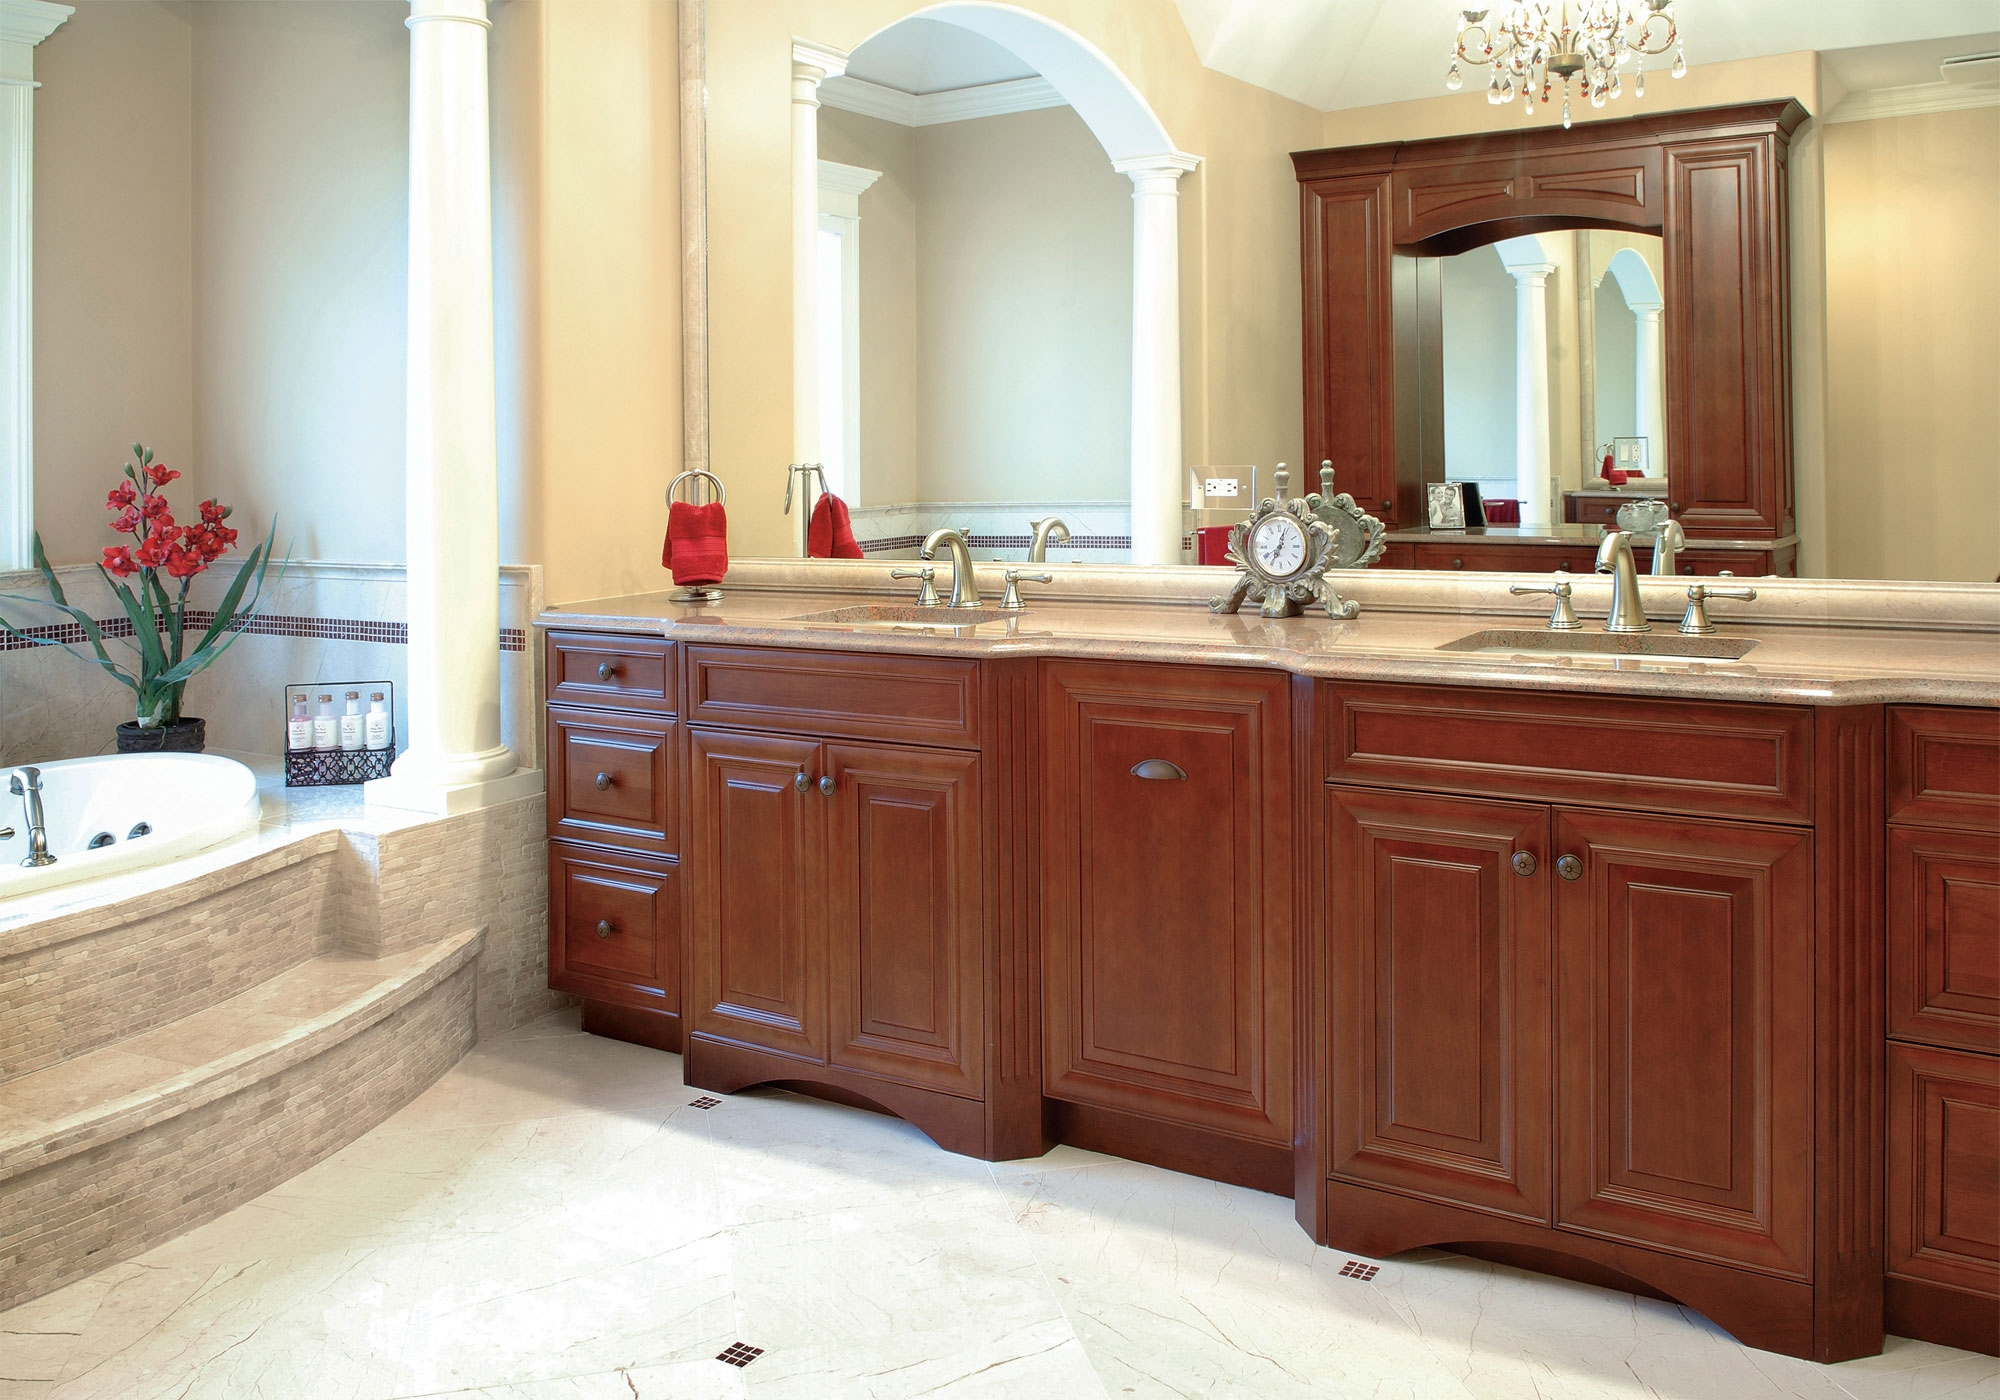 Kitchen Cabinets For Bathroom Vanity